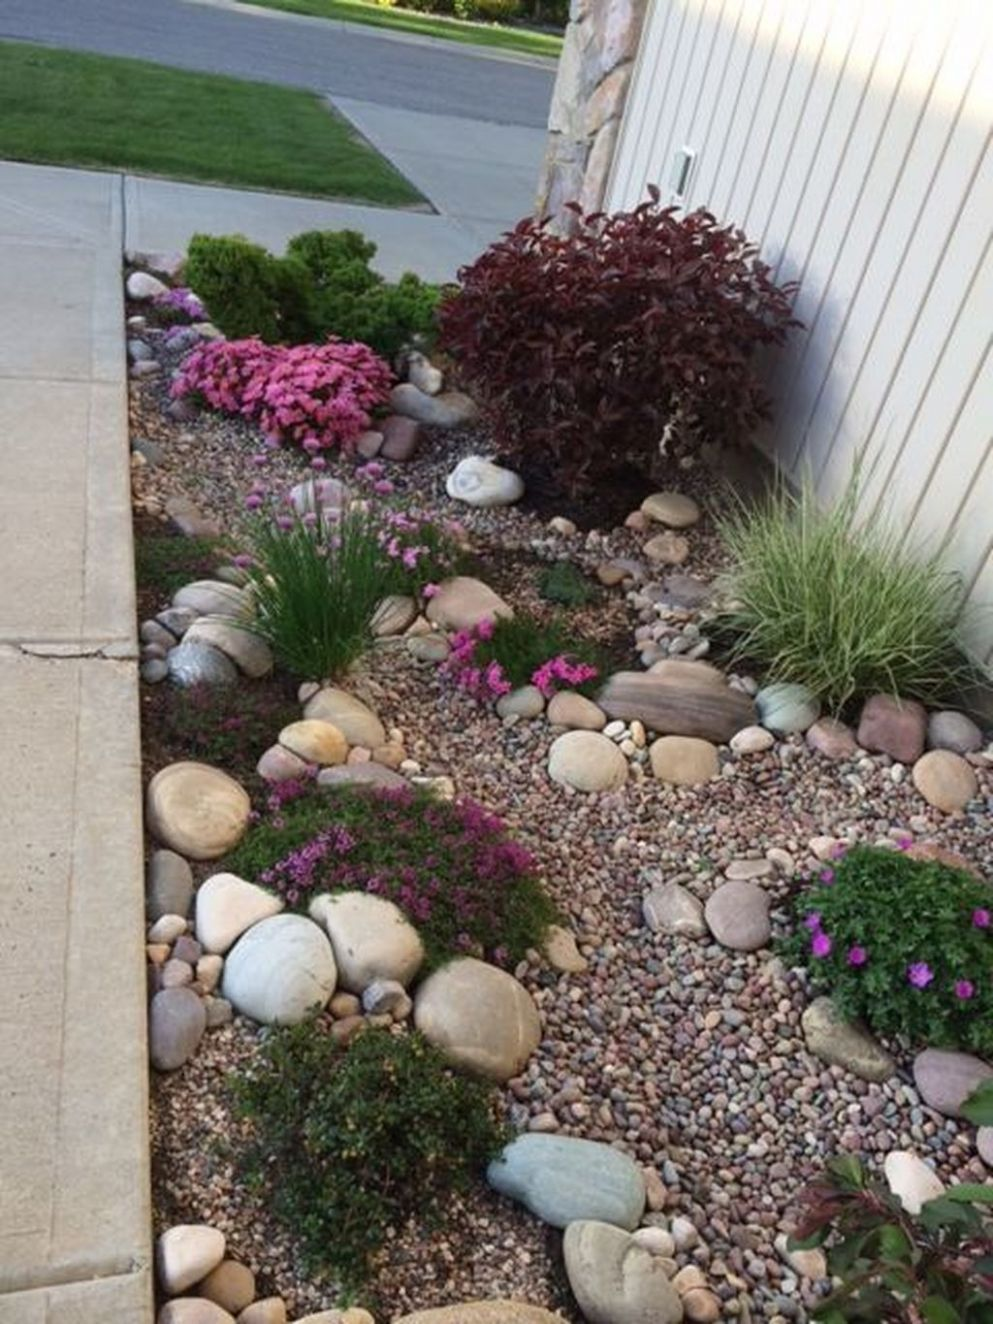 11 Pretty Rock Garden Ideas On A Budget (With images) | Rock ..